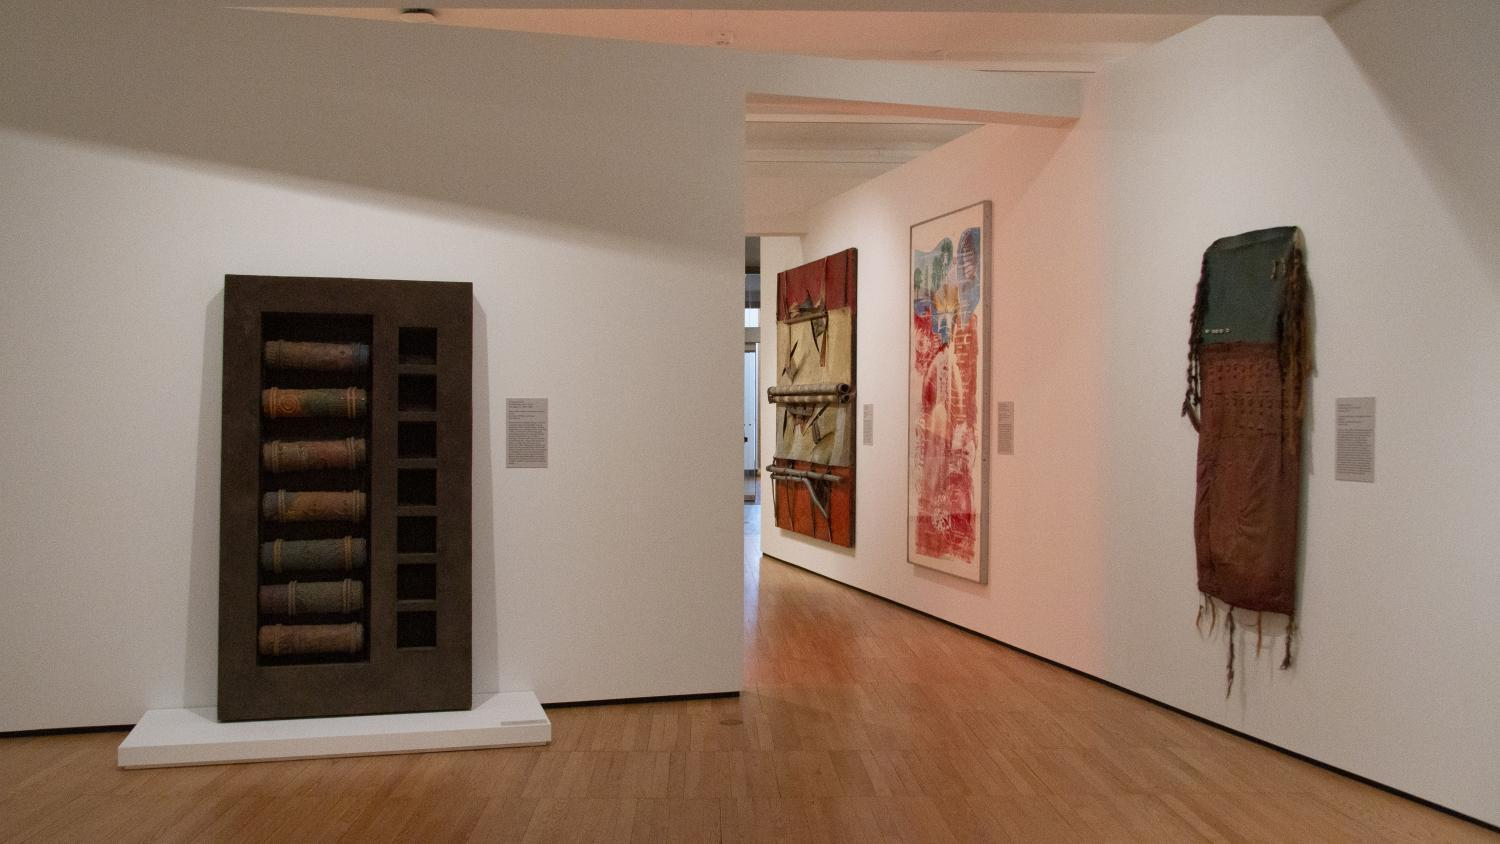 A gallery filled with art, including a large rectangular sculpture leaning against a wall. It has textured rollers to the left and empty box-like shelves to the right. On the right-hand wall are a print and two assemblage works of art.